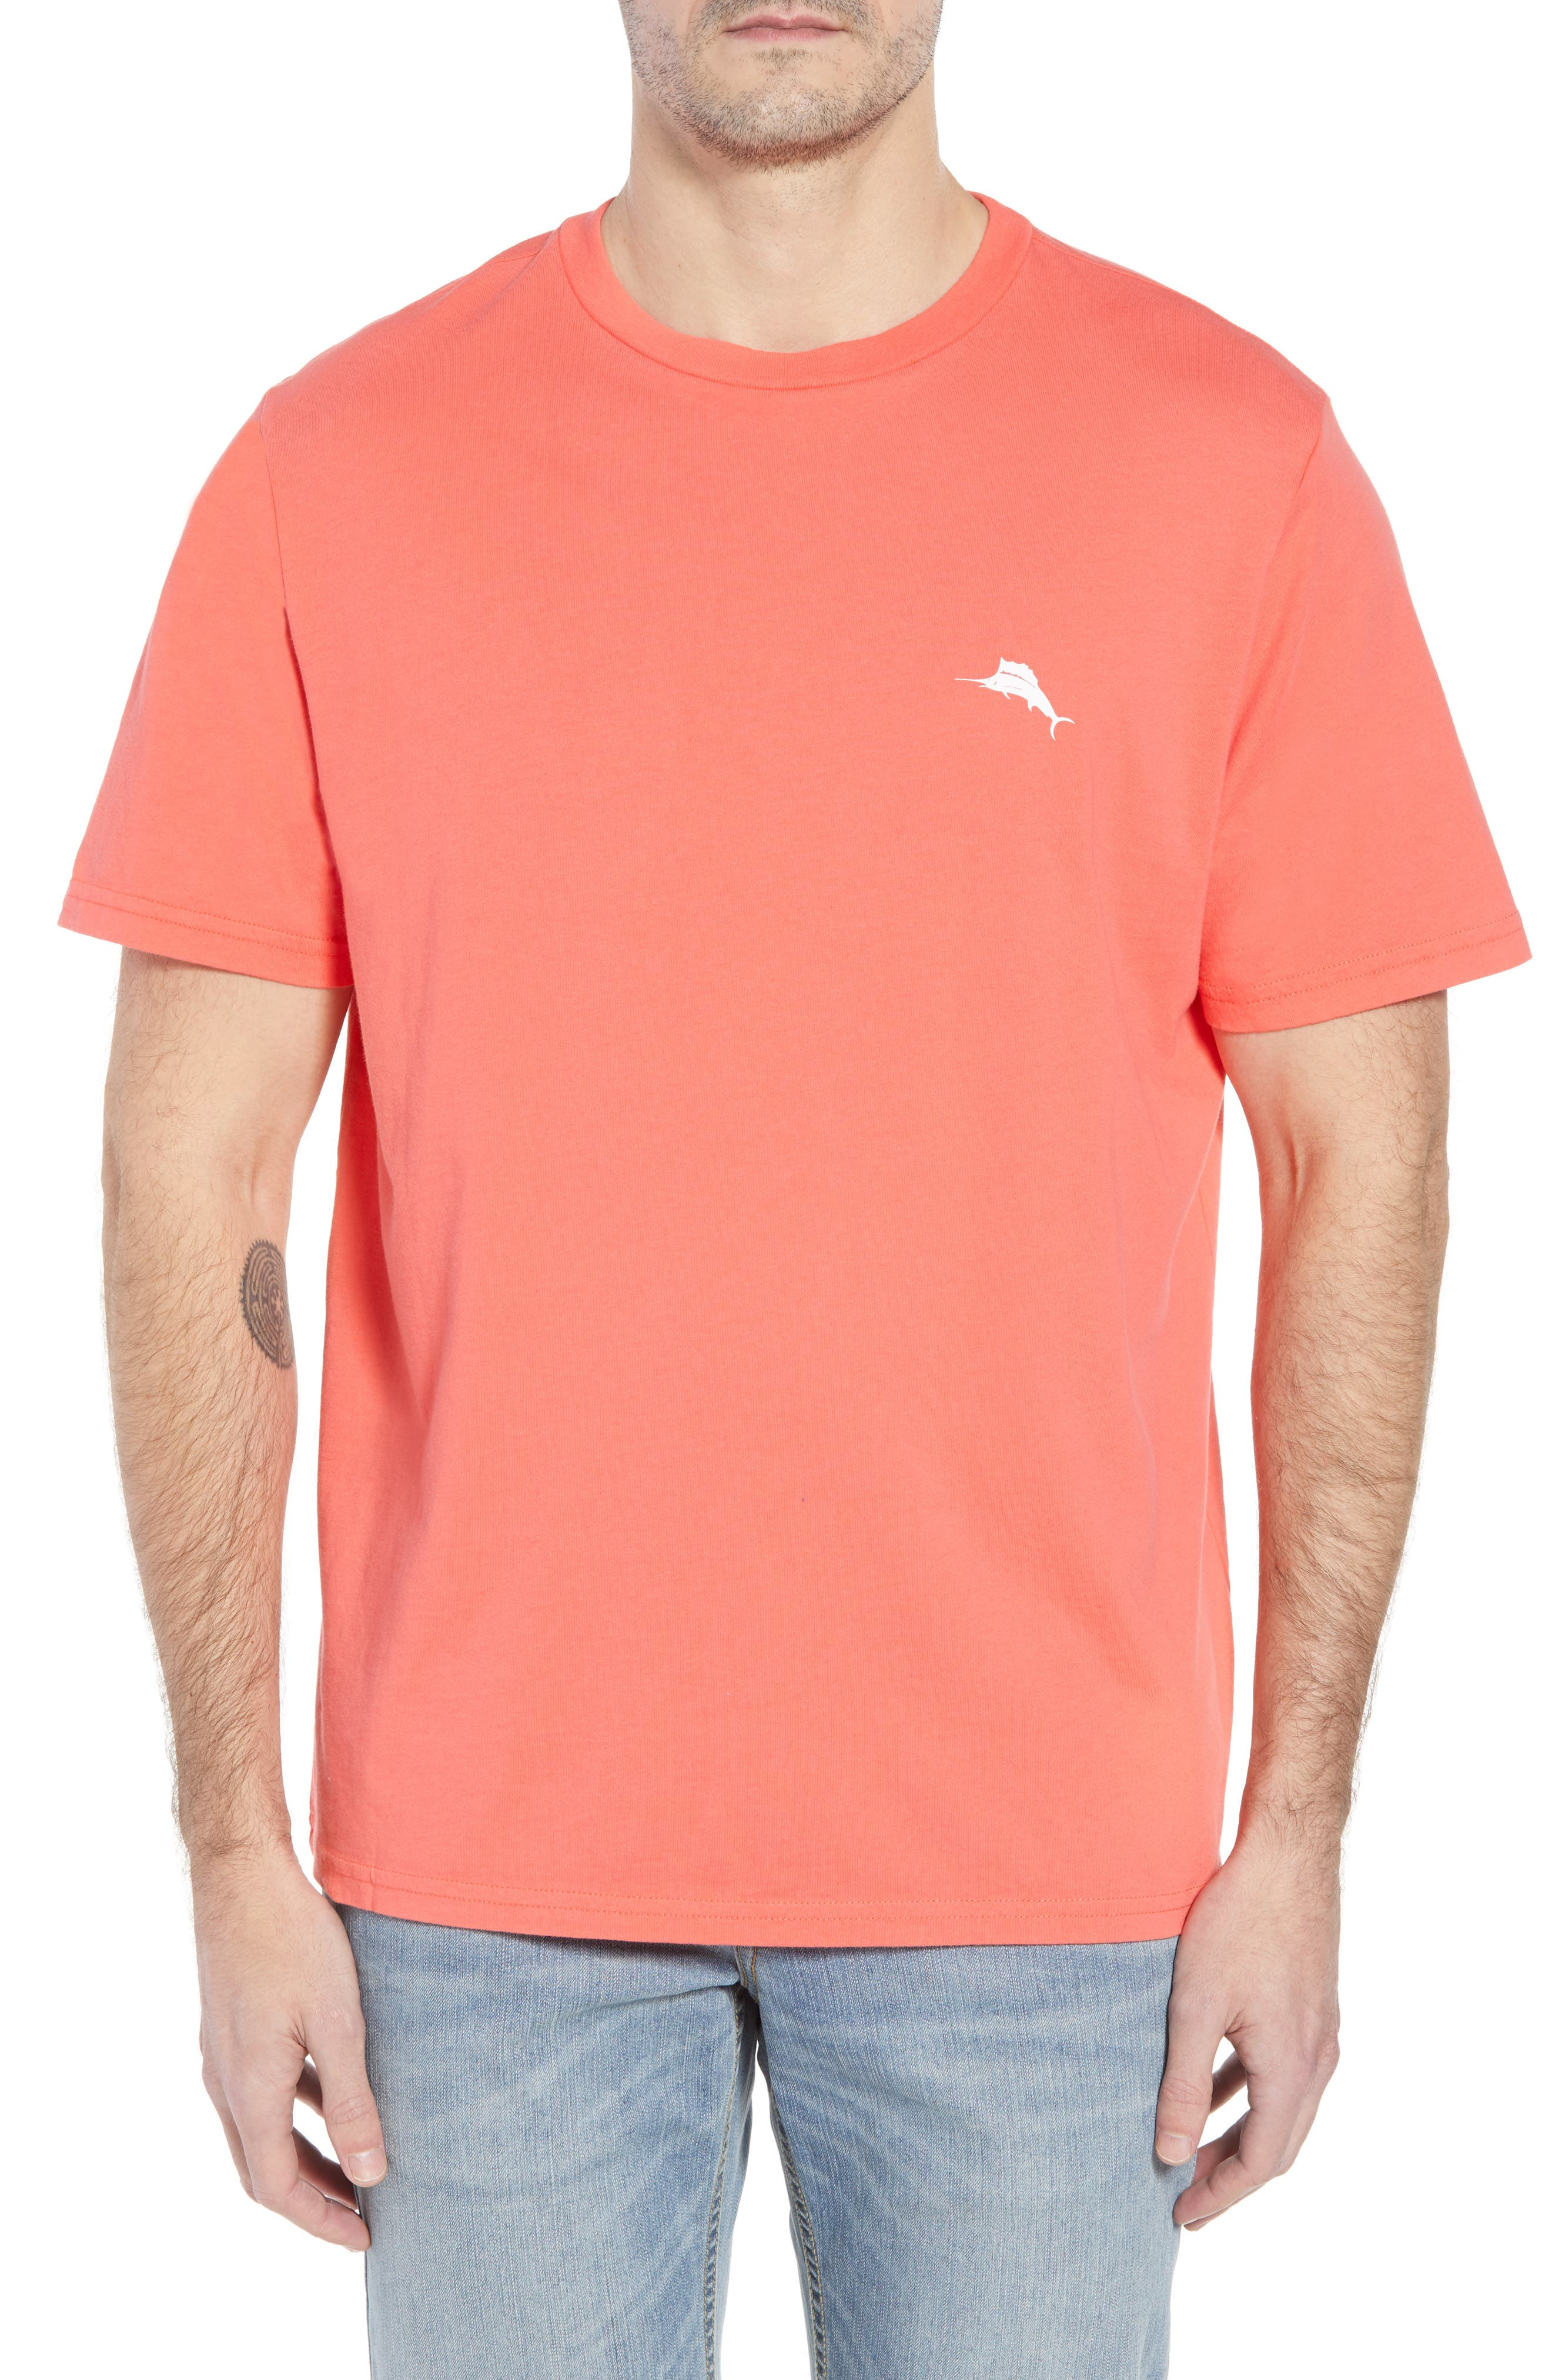 Catch the Wave Graphic T-Shirt,                         Main,                         color, 800